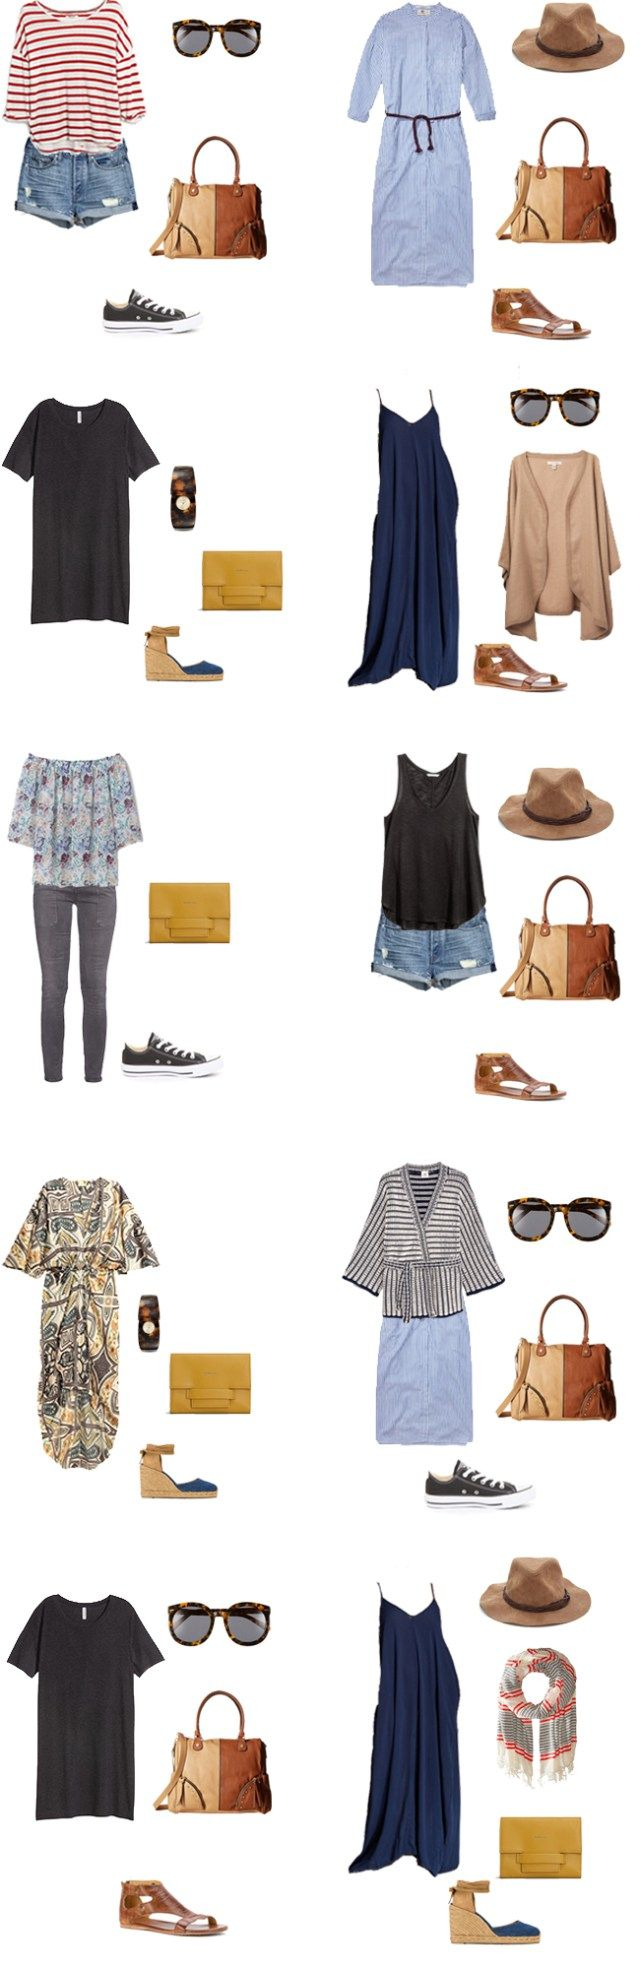 What to Wear on a Caribbean Cruise Outfit Options 1-10 #travellight #travel #packinglight #traveltips